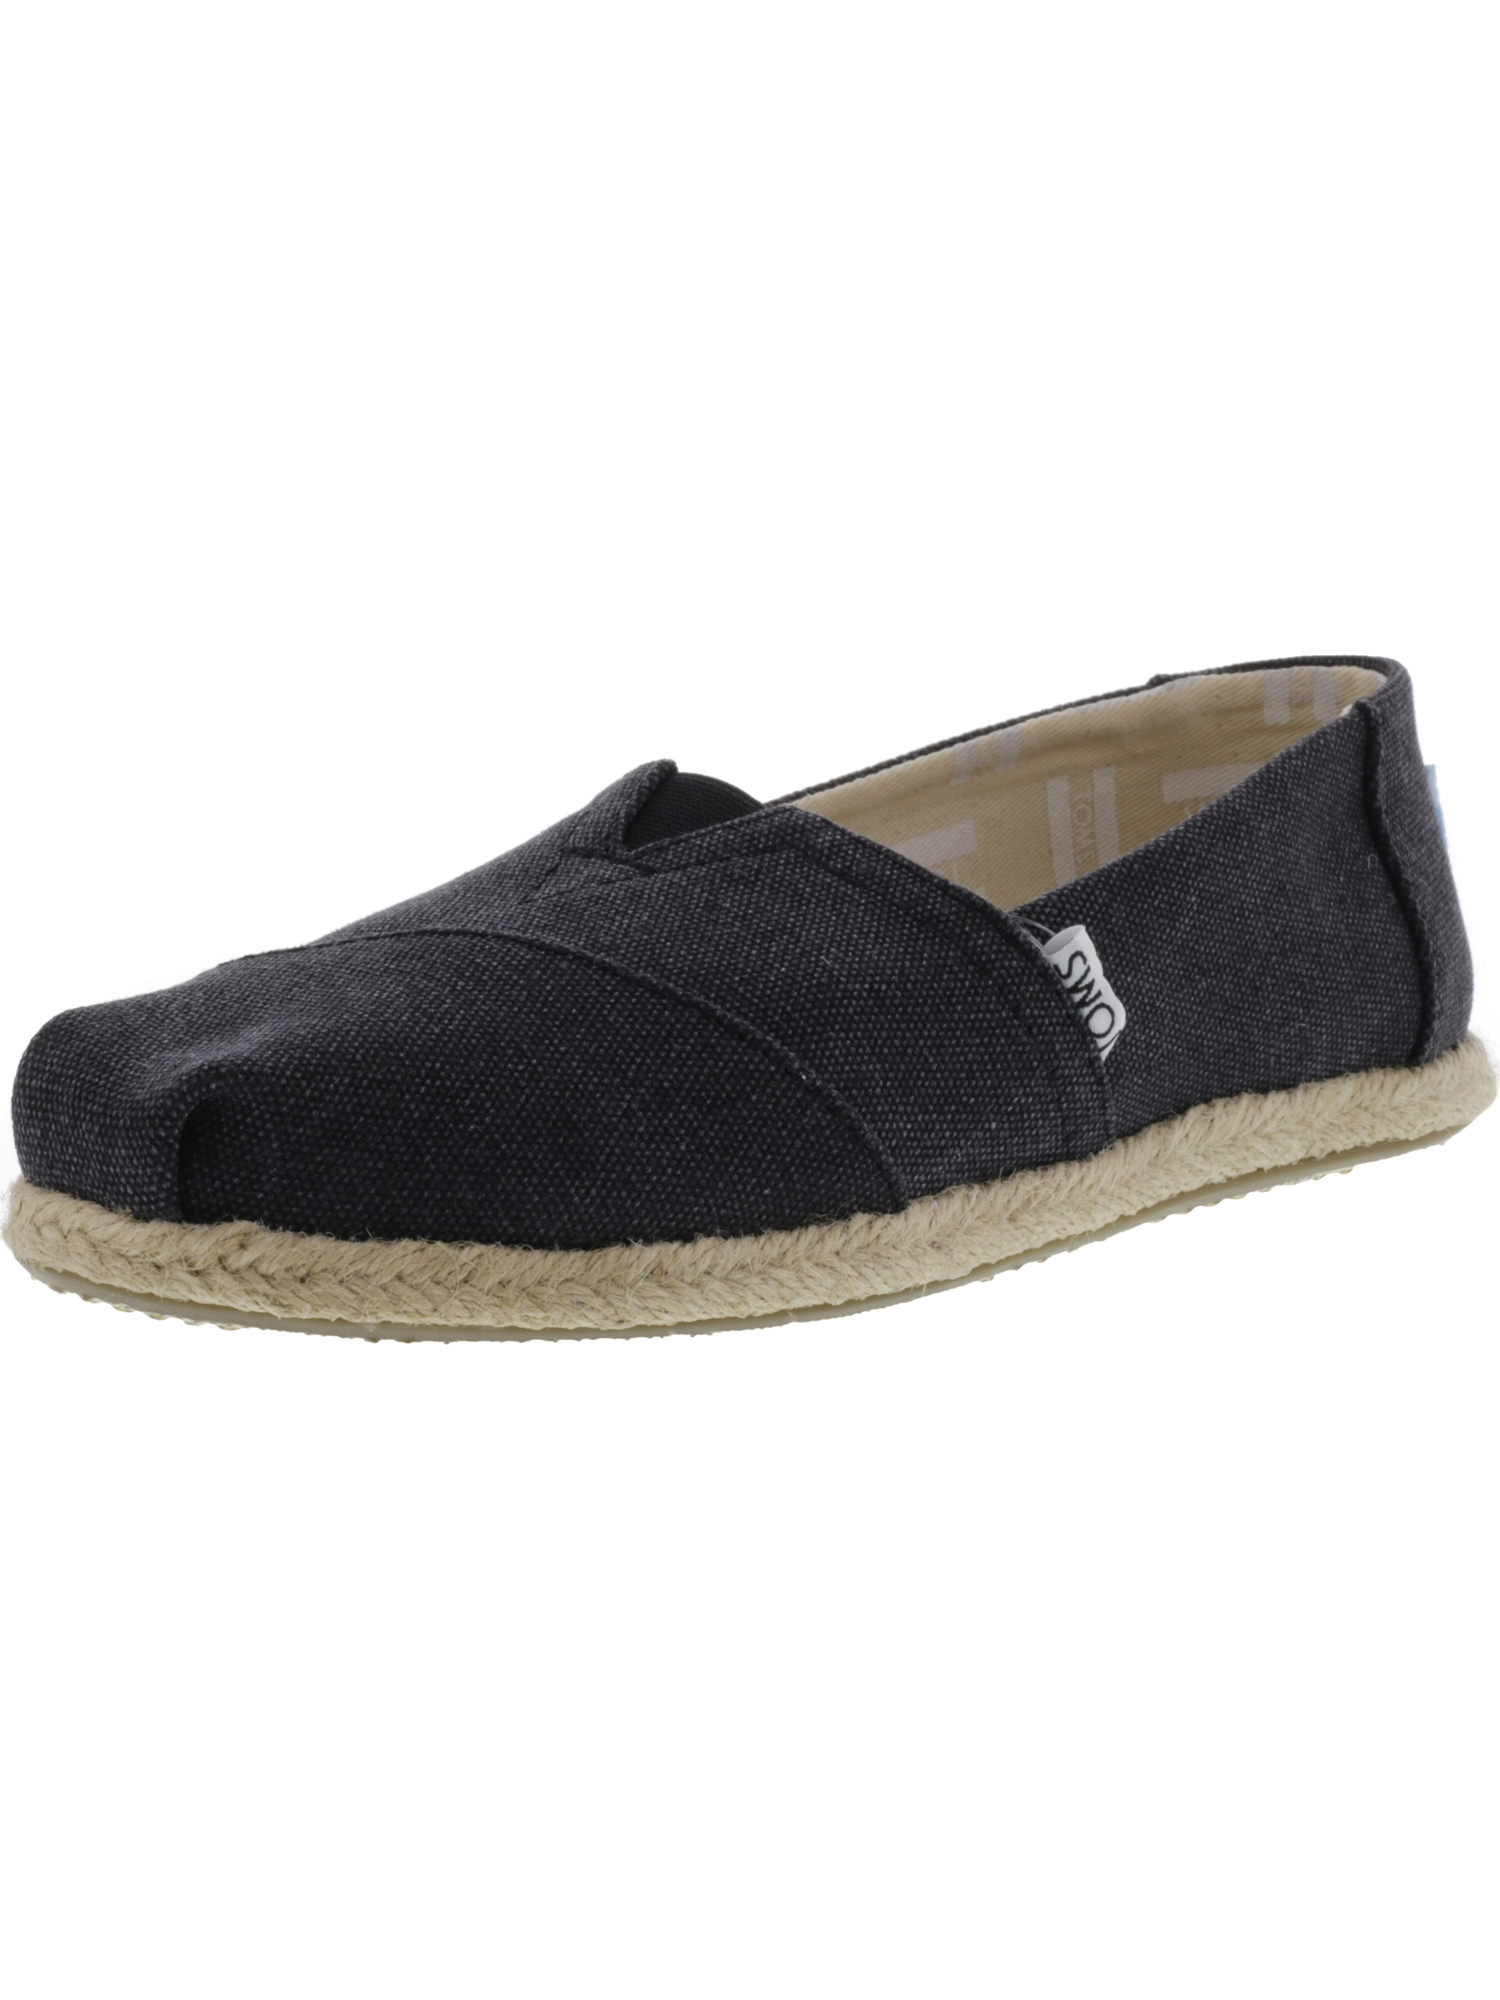 5ccbaccc872 Toms Women s Classic Washed Canvas Rope Sole Navy Slip-On Shoes